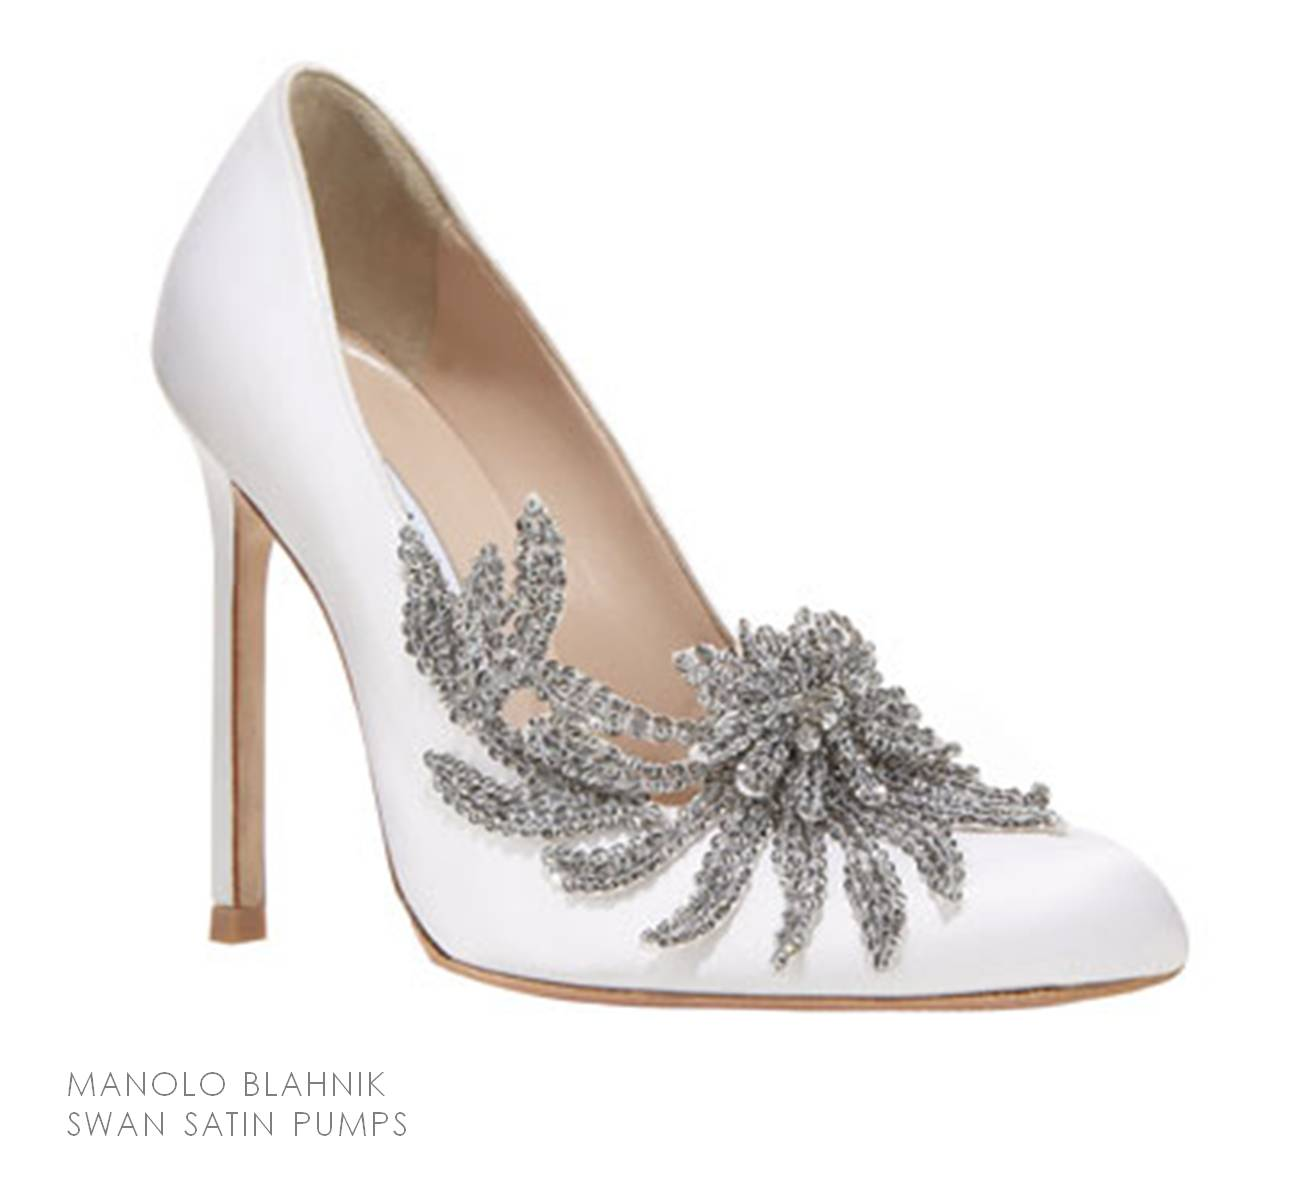 Manolo Blahnik Black And White Shoes